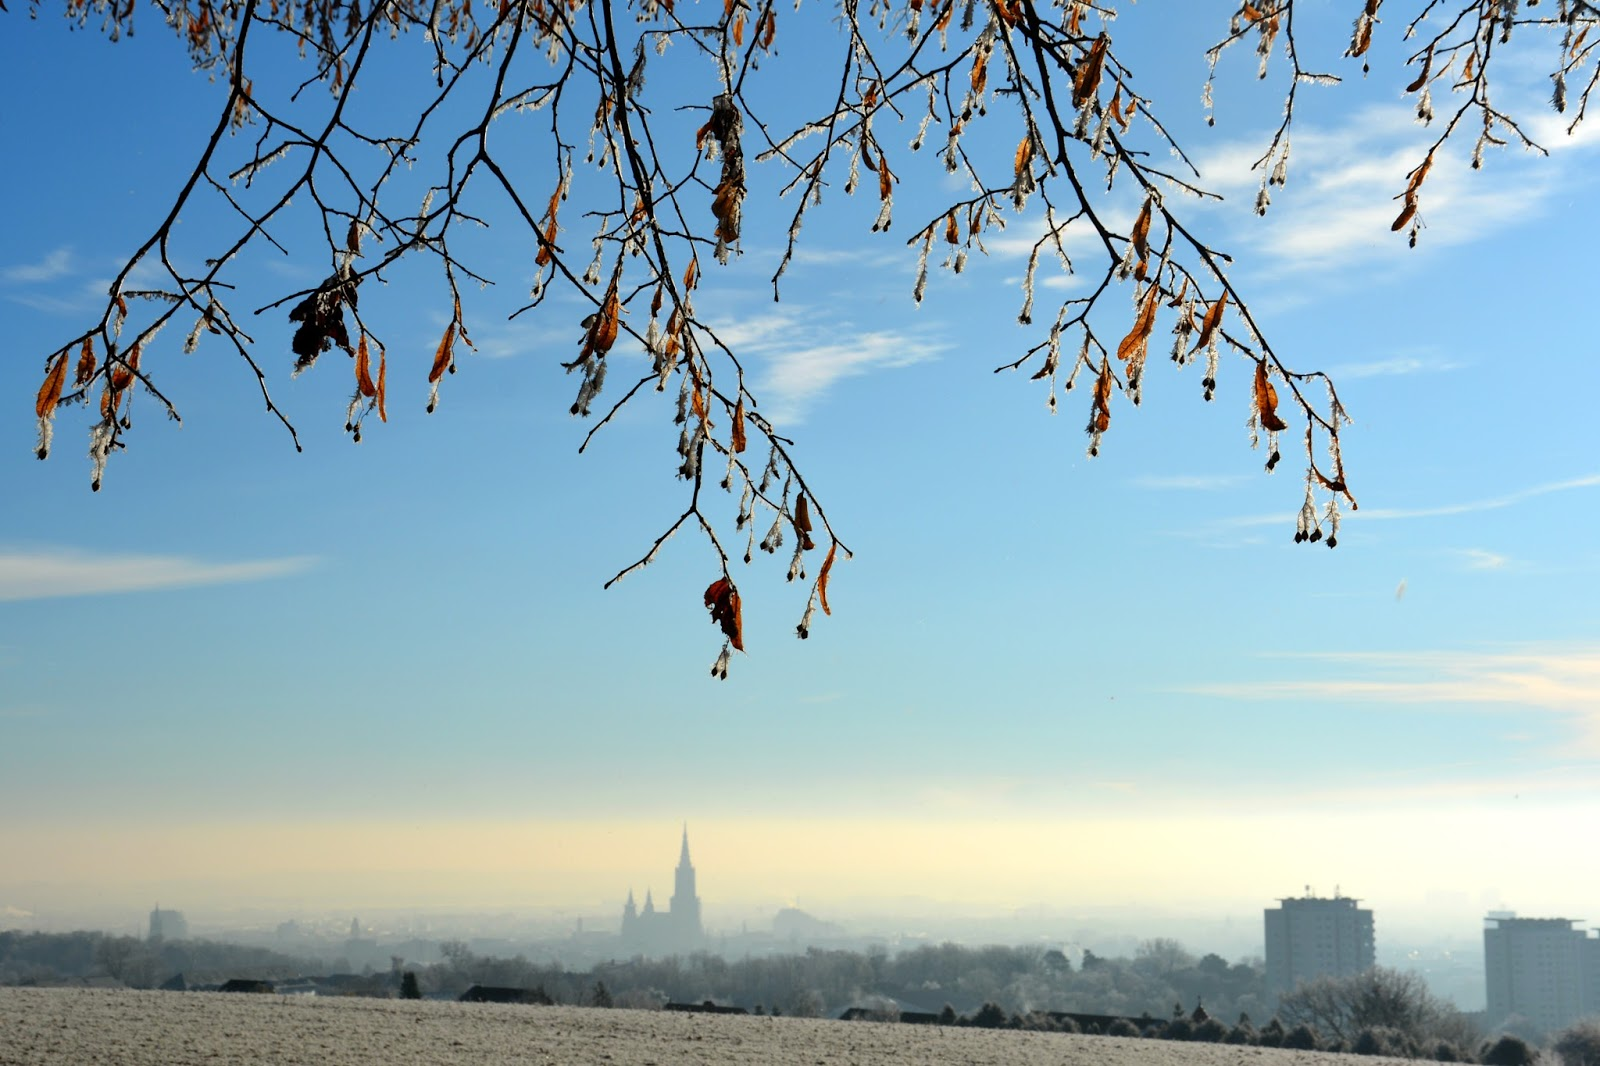 view of Ulm with the Münster and a few branches